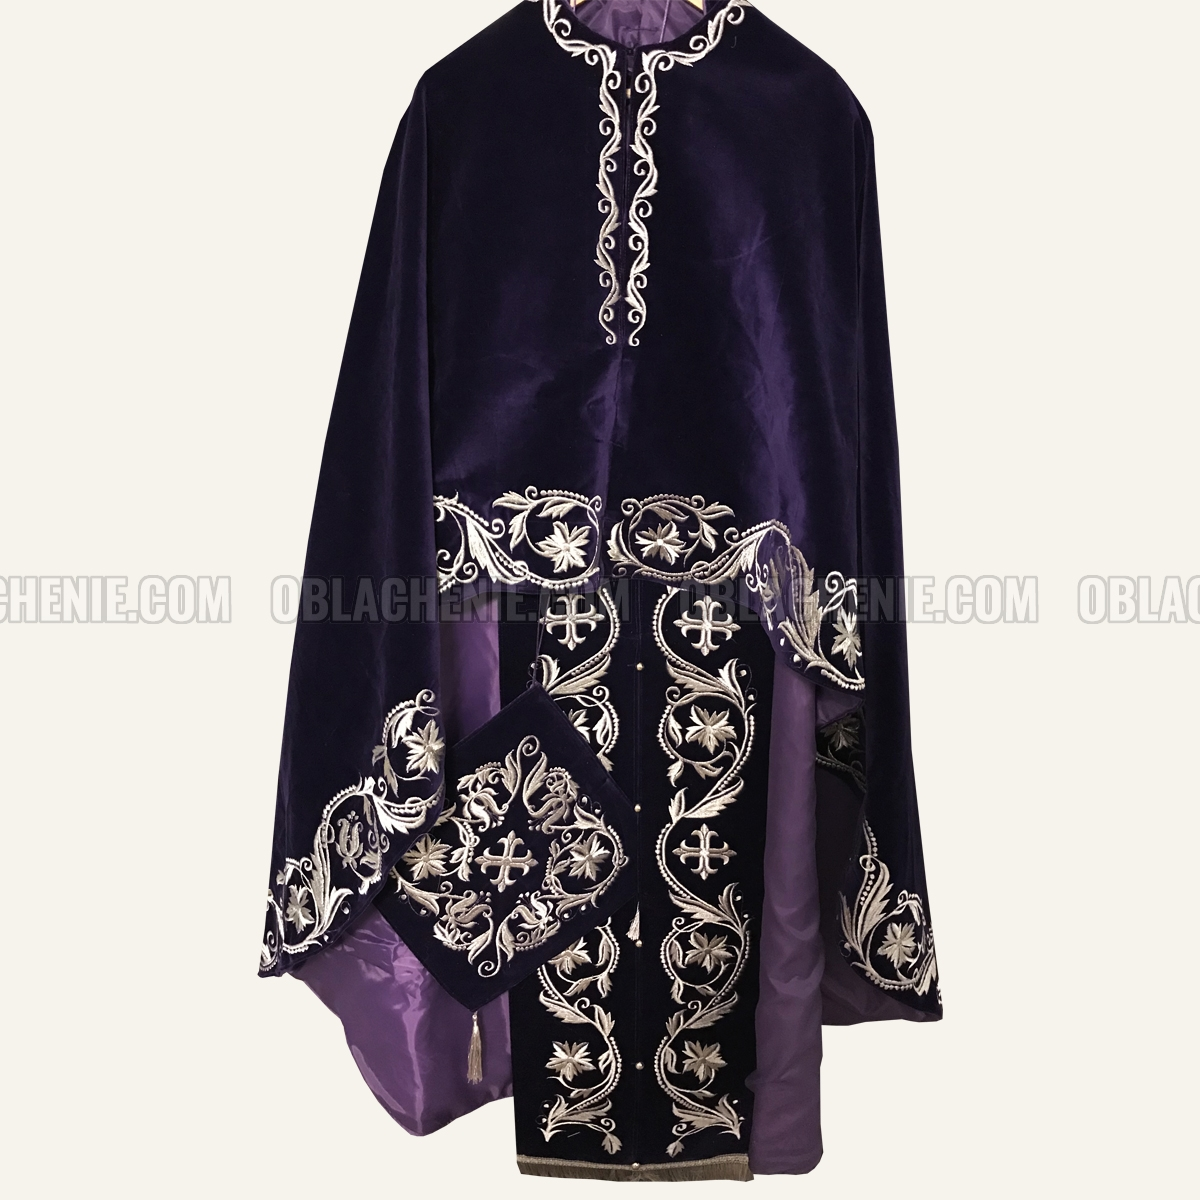 Embroidered priest's vestments 10206